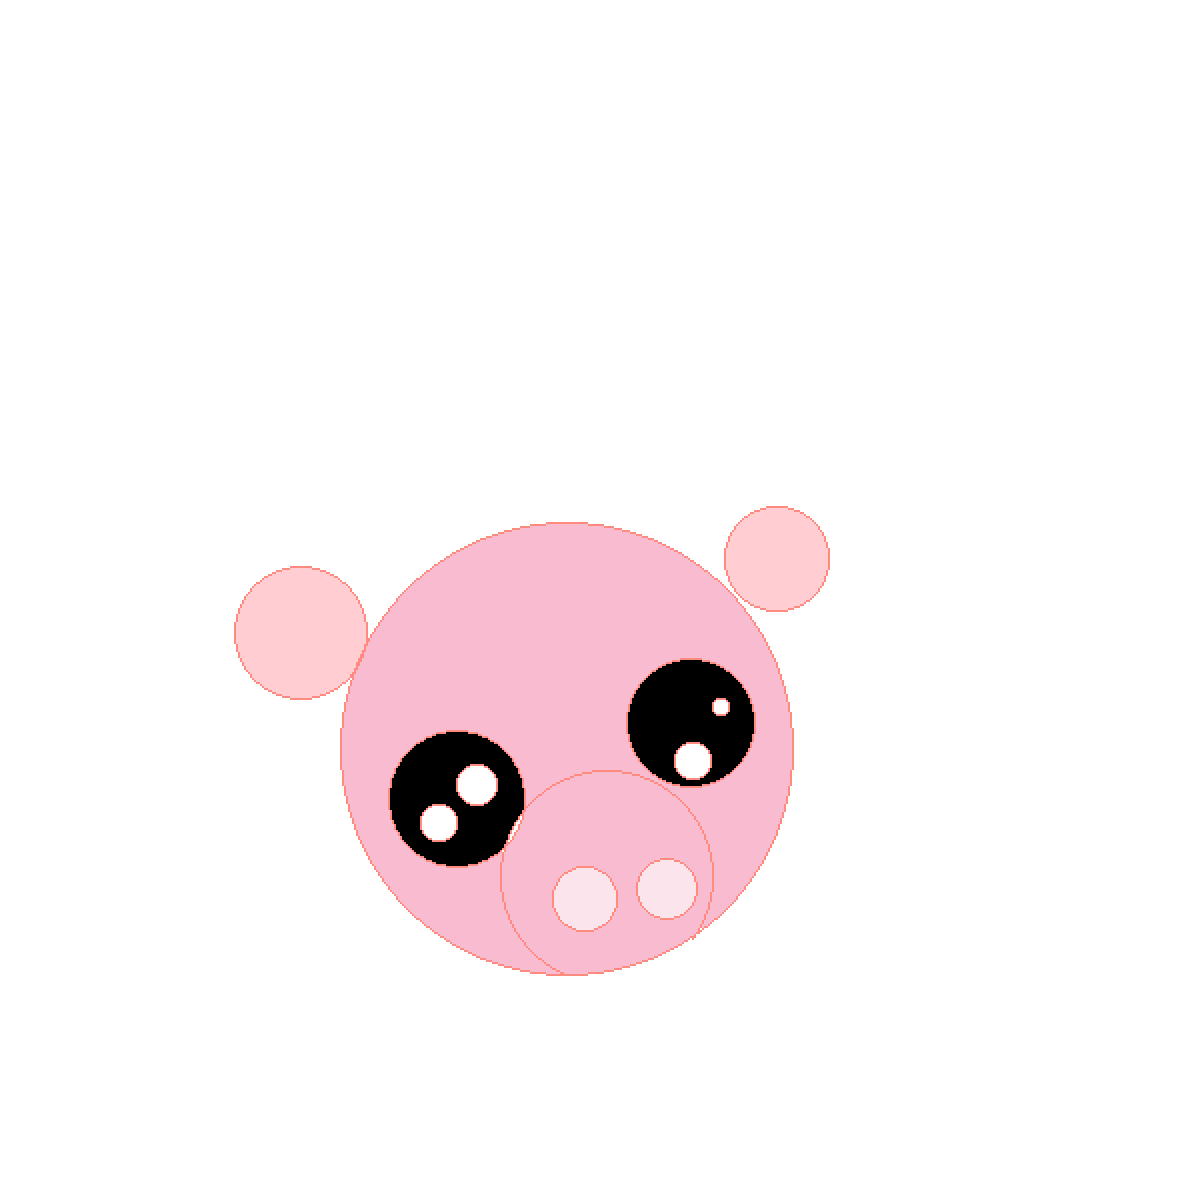 le pig child  by lizy963298523